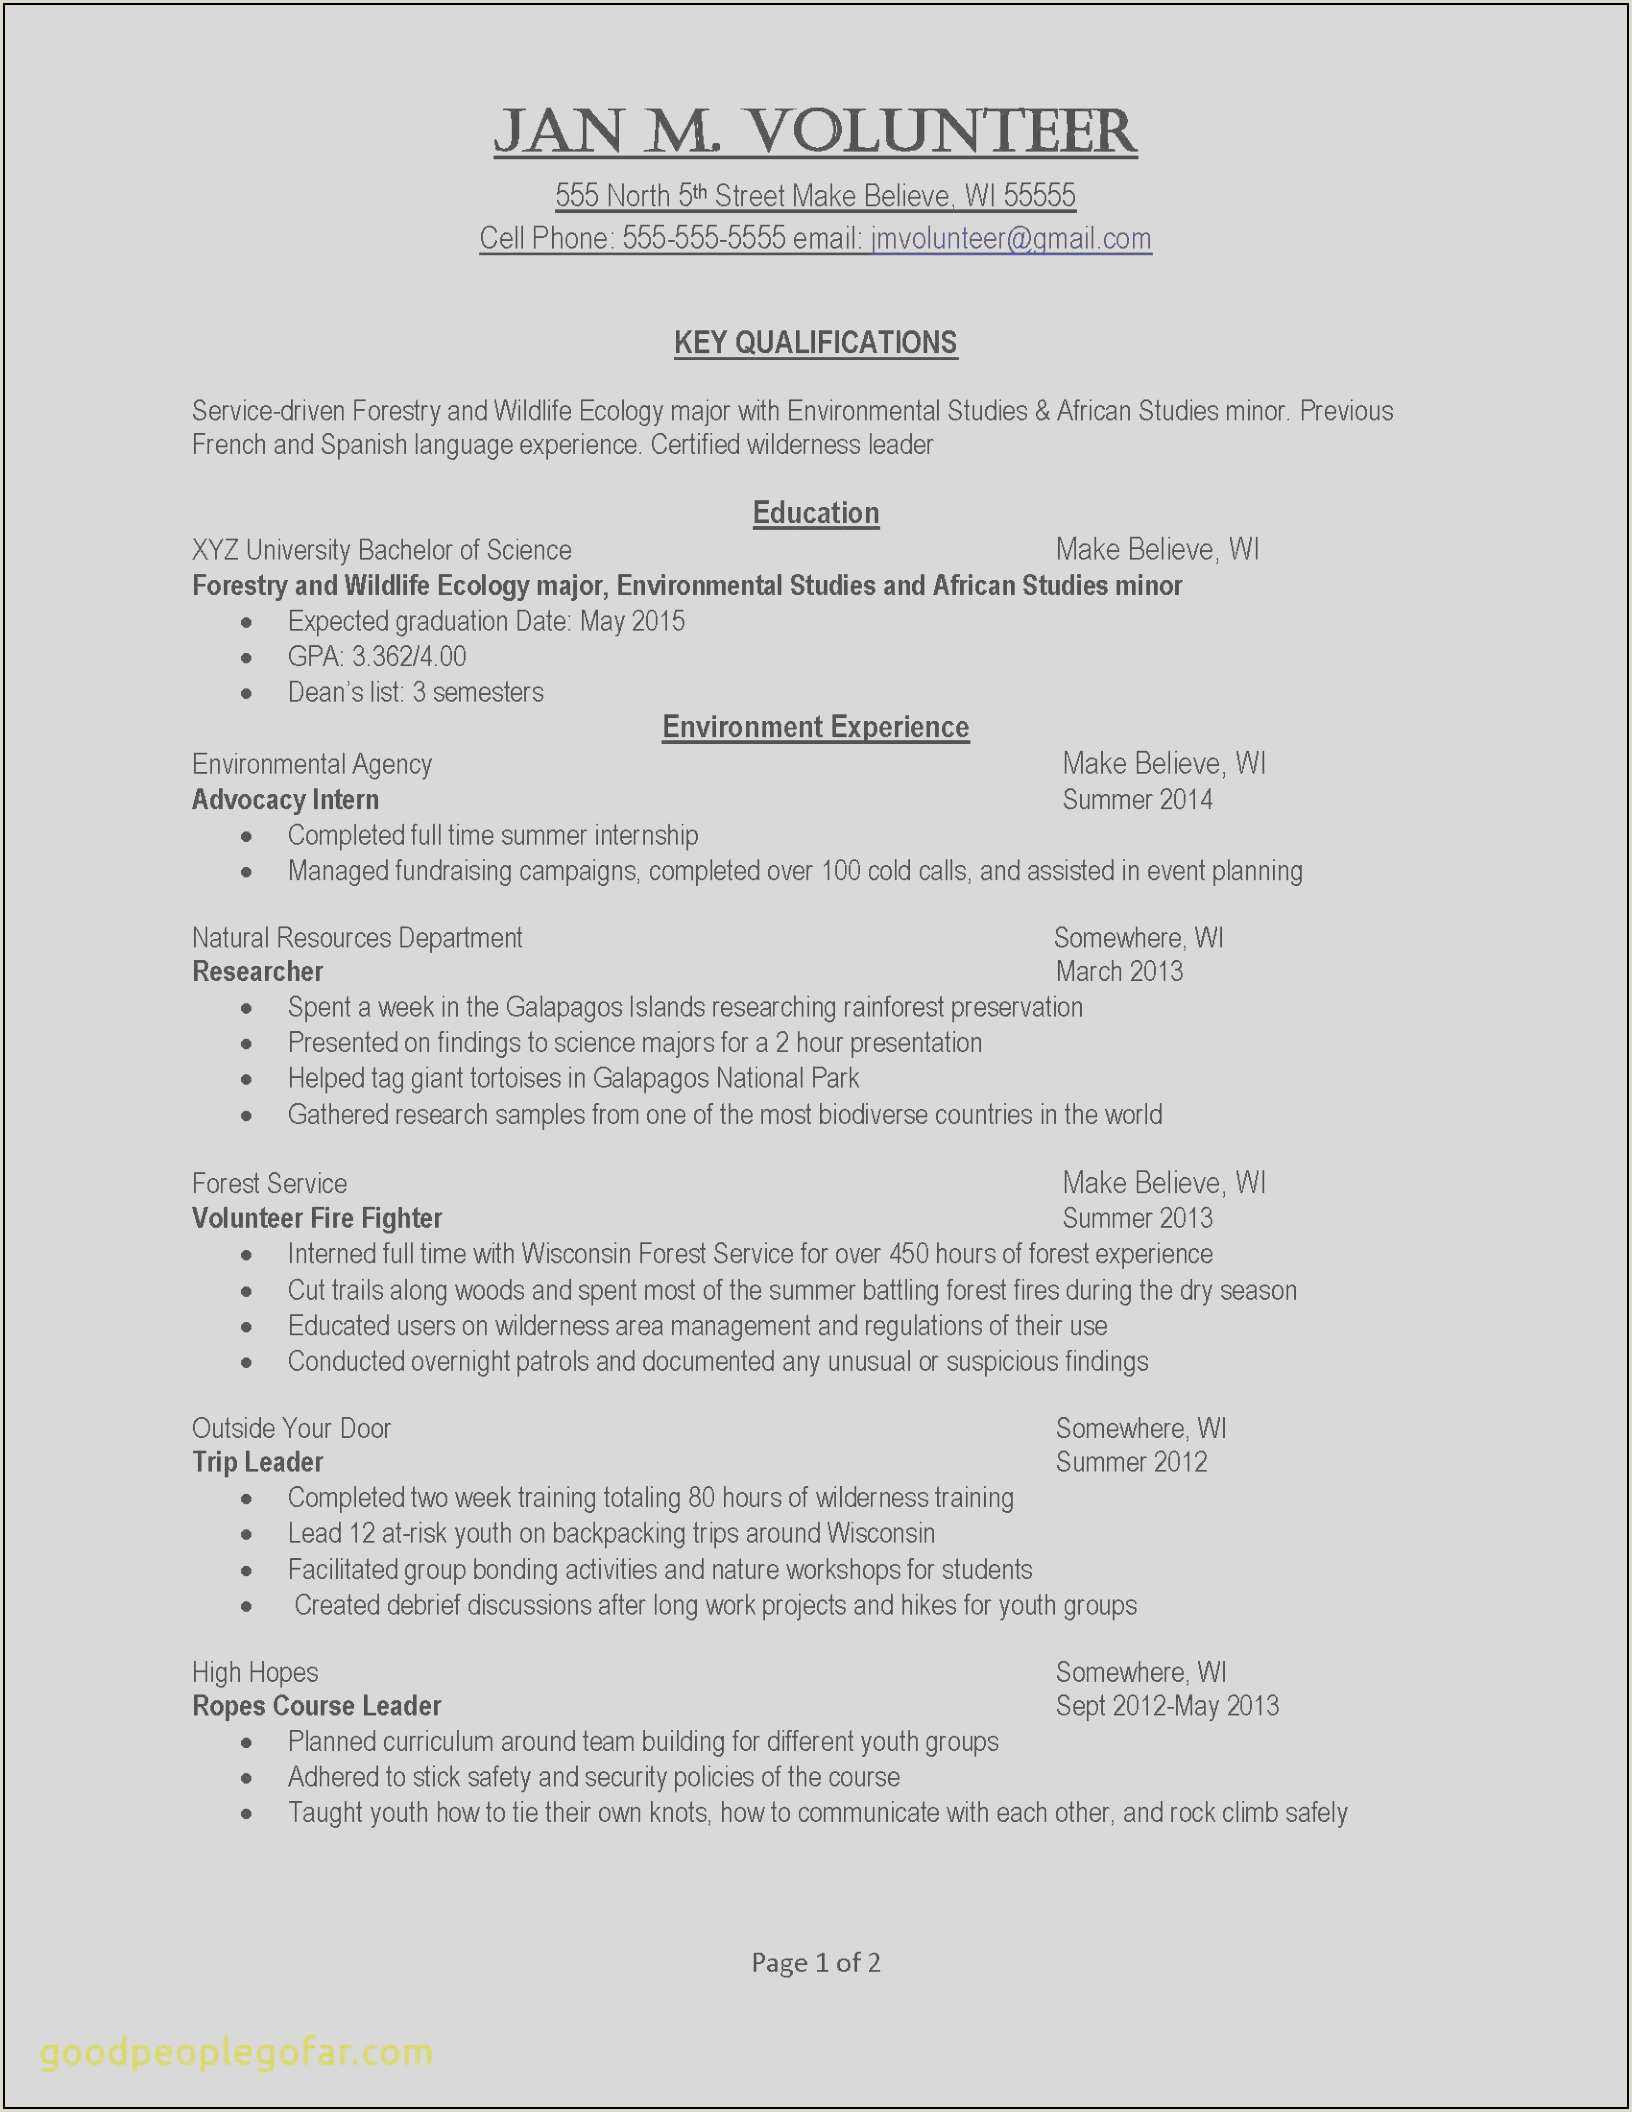 Subway Job Description for Resume Subway Job Description for Resume Fresh Subway Job Duties